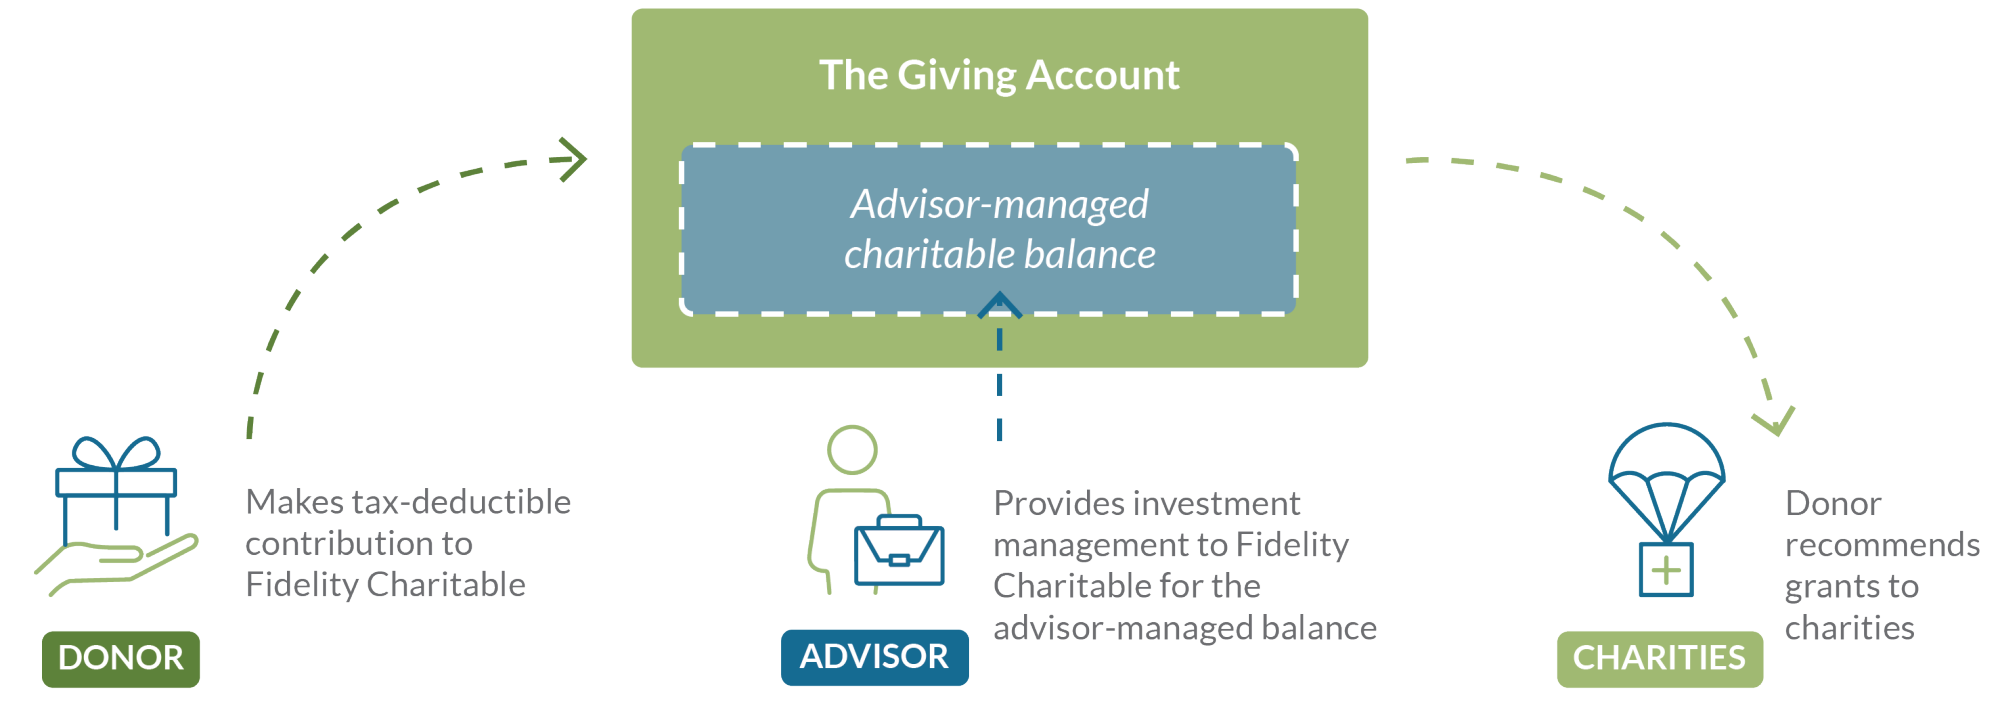 Graphic showing how donors and advisors work with the Giving Account.